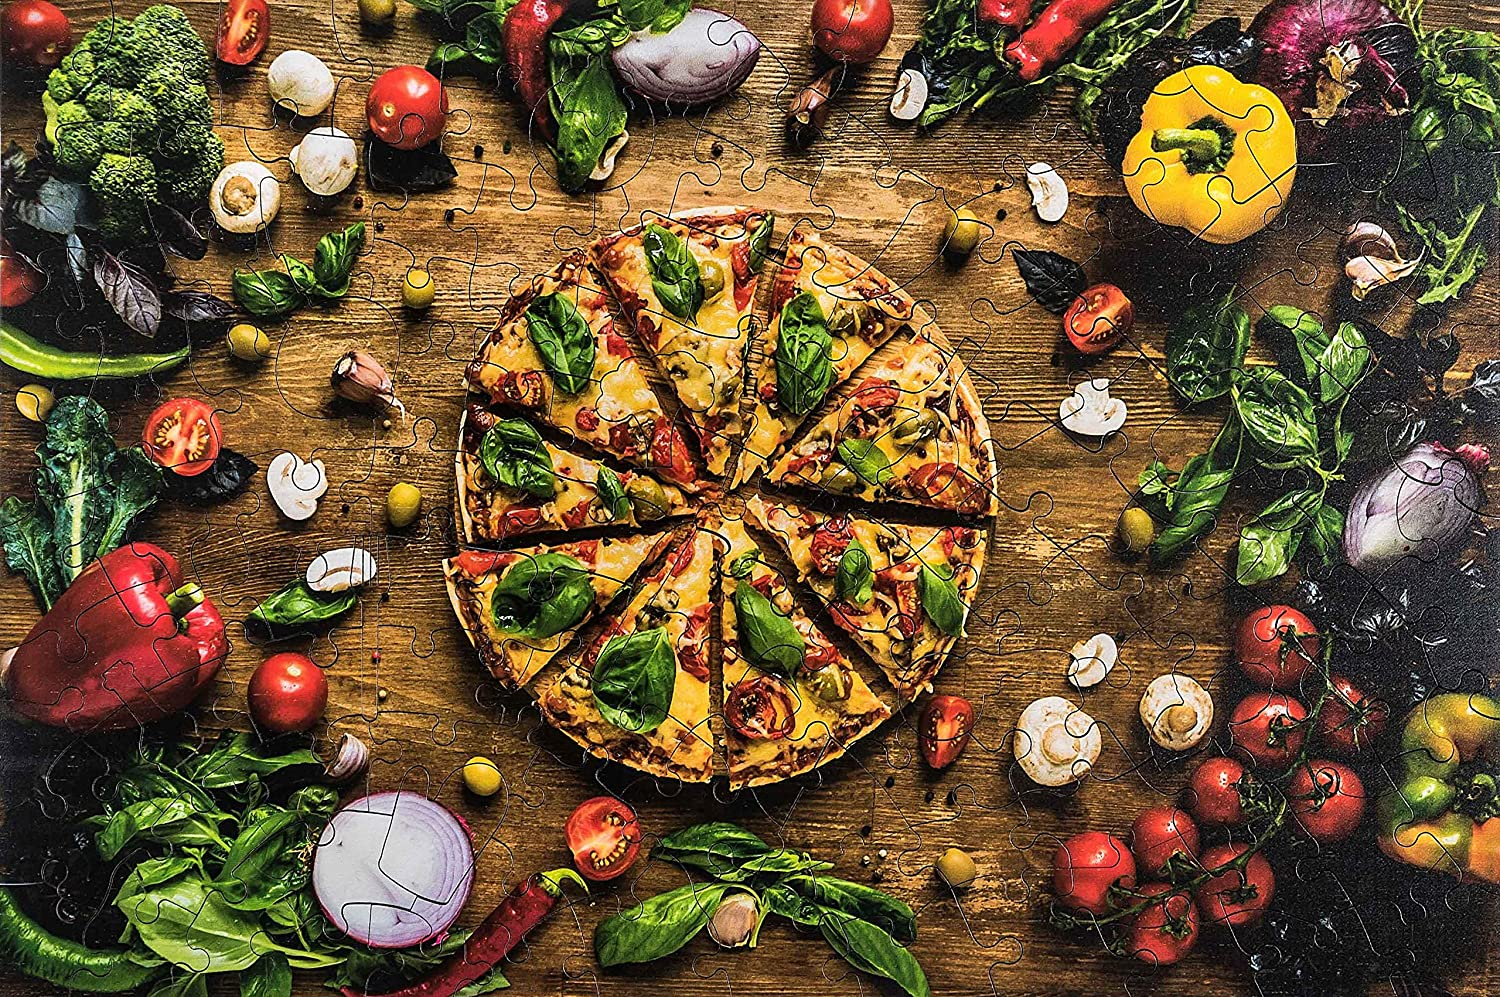 Wooden Jigsaw Puzzles - Pizza Fast Food - 137 Irregular Pieces - Colorful Puzzle for a Real Pizza Lover – BasisWood